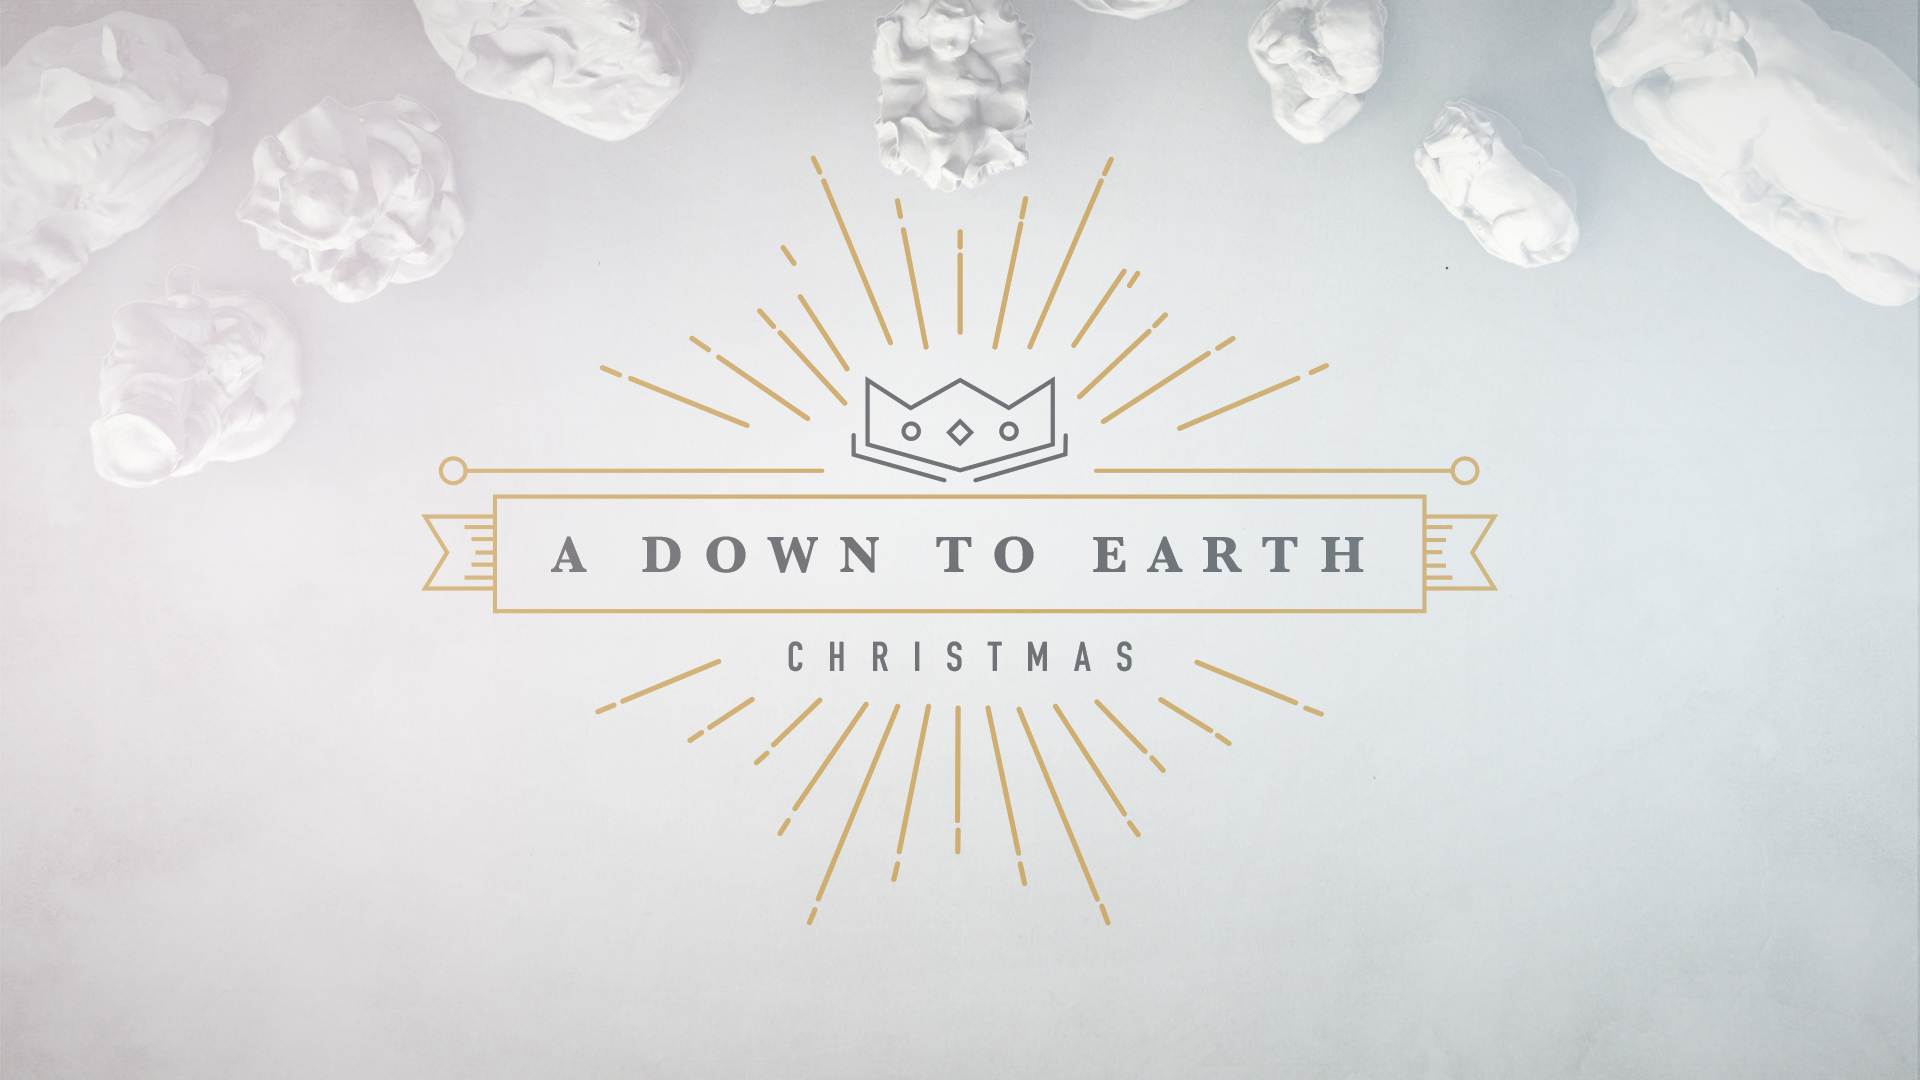 A Down To Earth Christmas